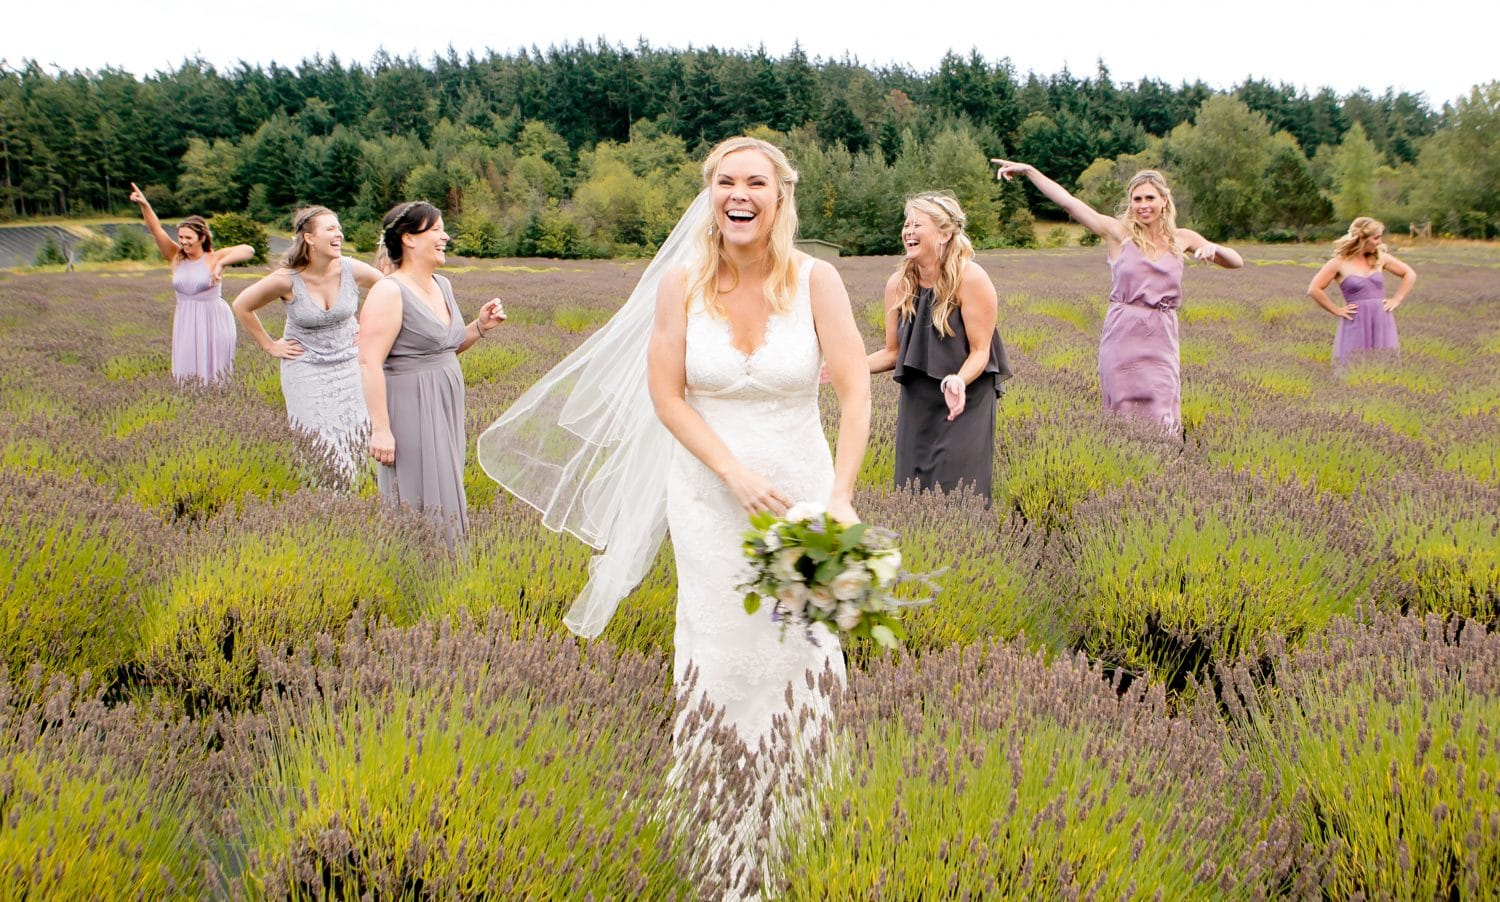 pelindaba-lavendar-farm-wedding-venue-bridesmaids-laughing-photo